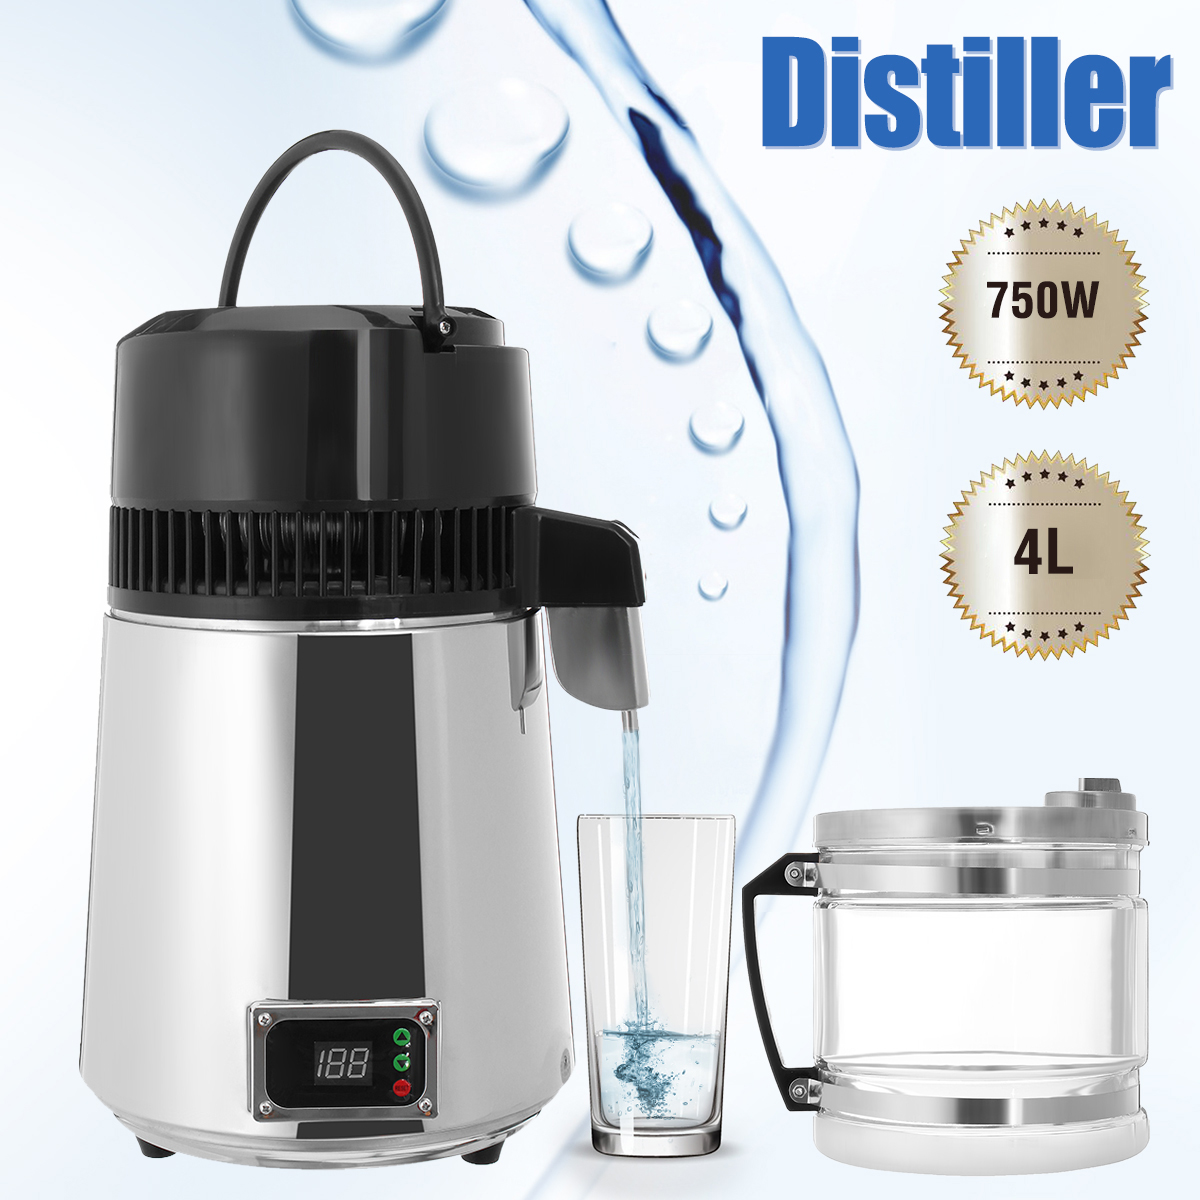 4L 750W Household Pure Water Distiller Electric Stainless Steel Water Purifier Container Filter Distilled Water Machine Glass